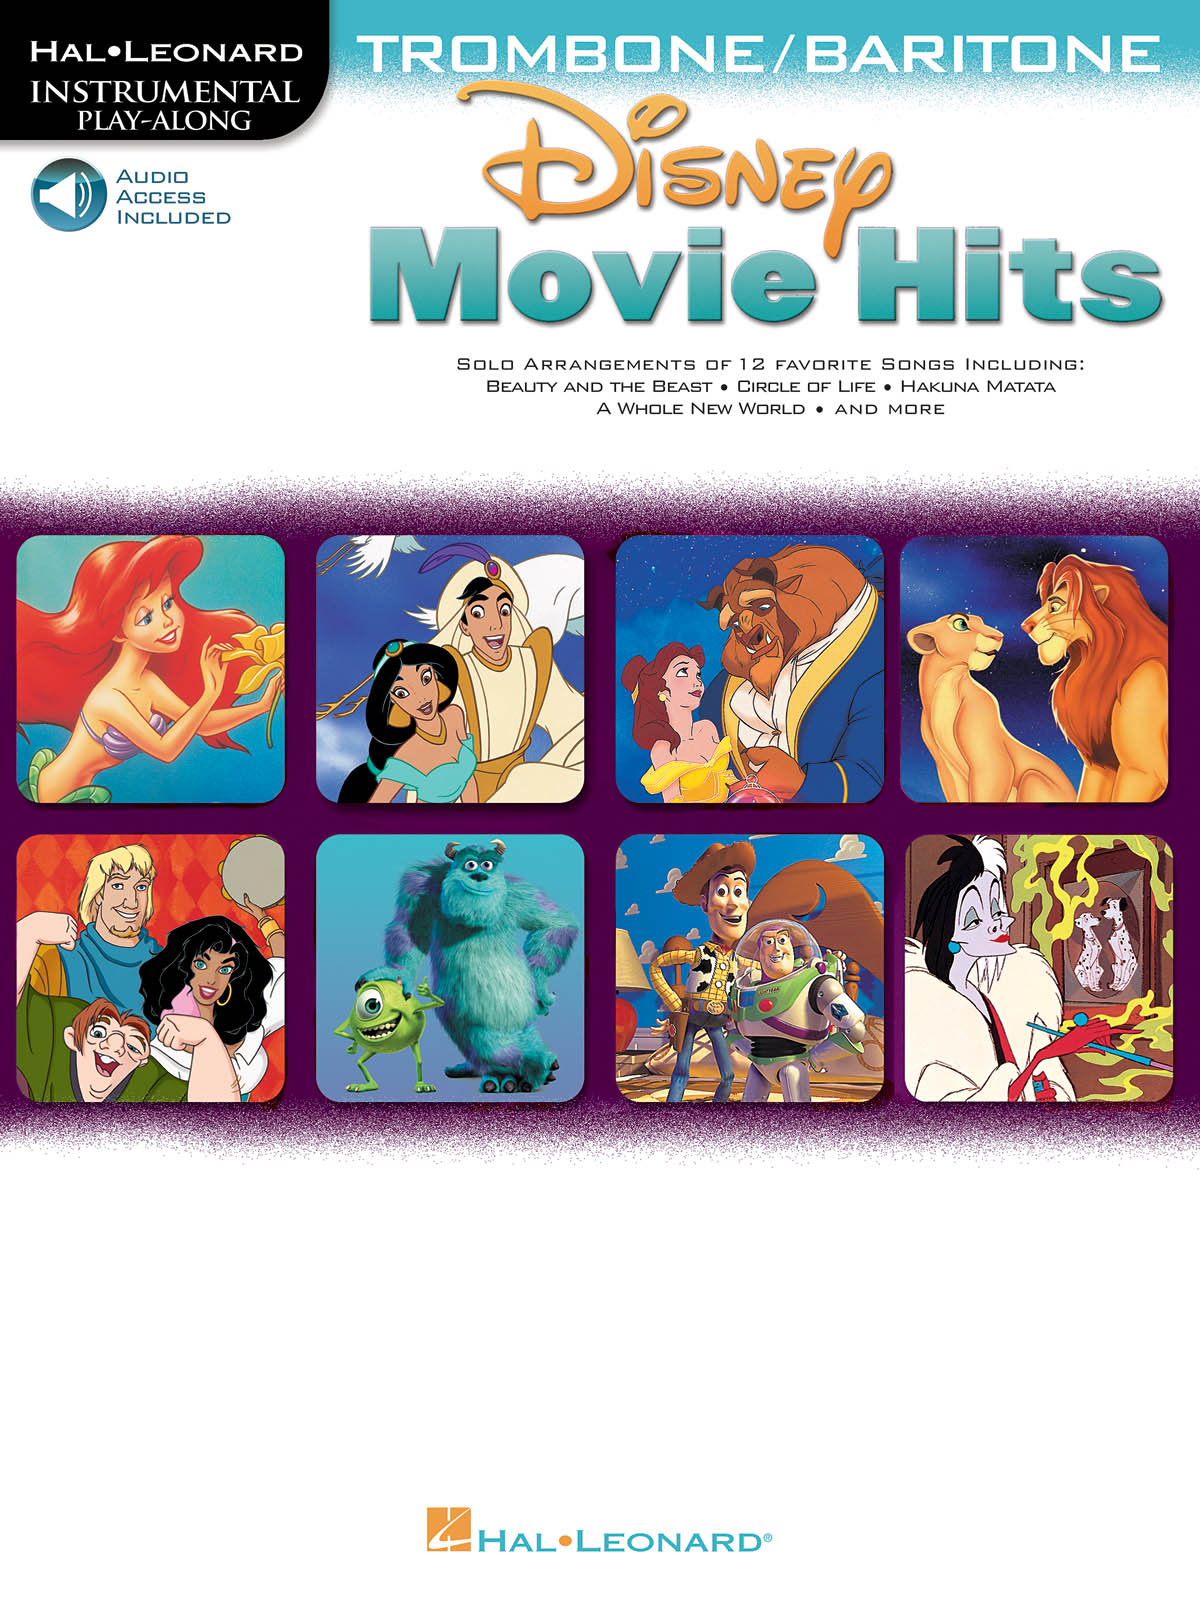 Disney Movie Hits - Trombone/Baritone: Trombone Solo: Instrumental Album